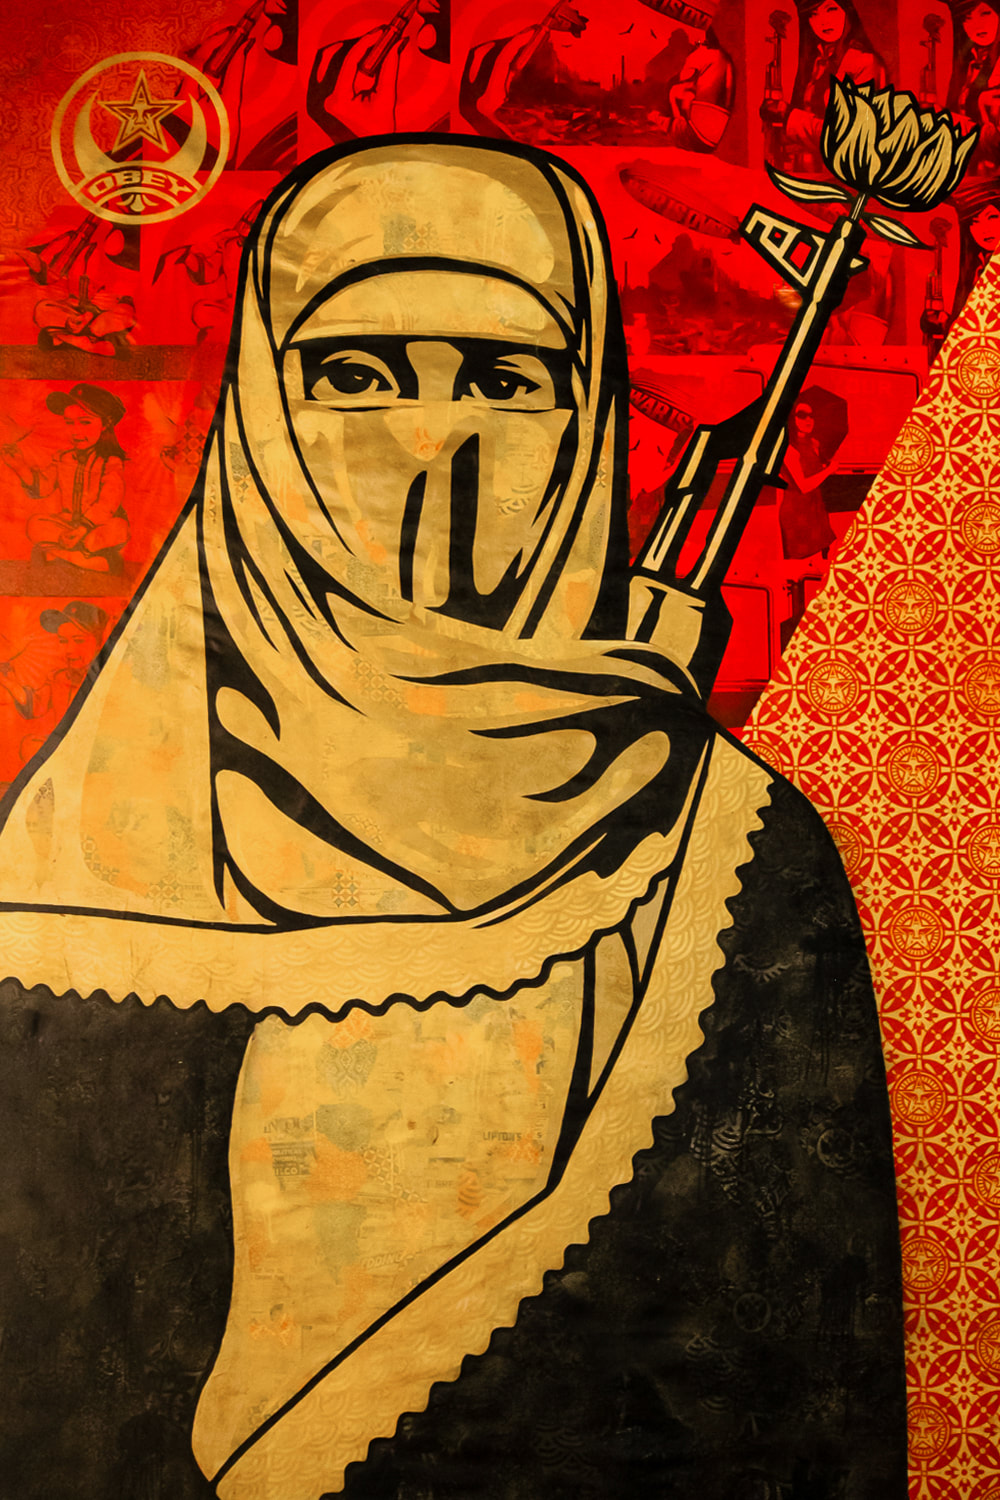 Singapore: Art From The Streets Exhibition at the ArtScience Museum - Detail of Middle East Mural - Shepard Fairey (Obey) - 2009.